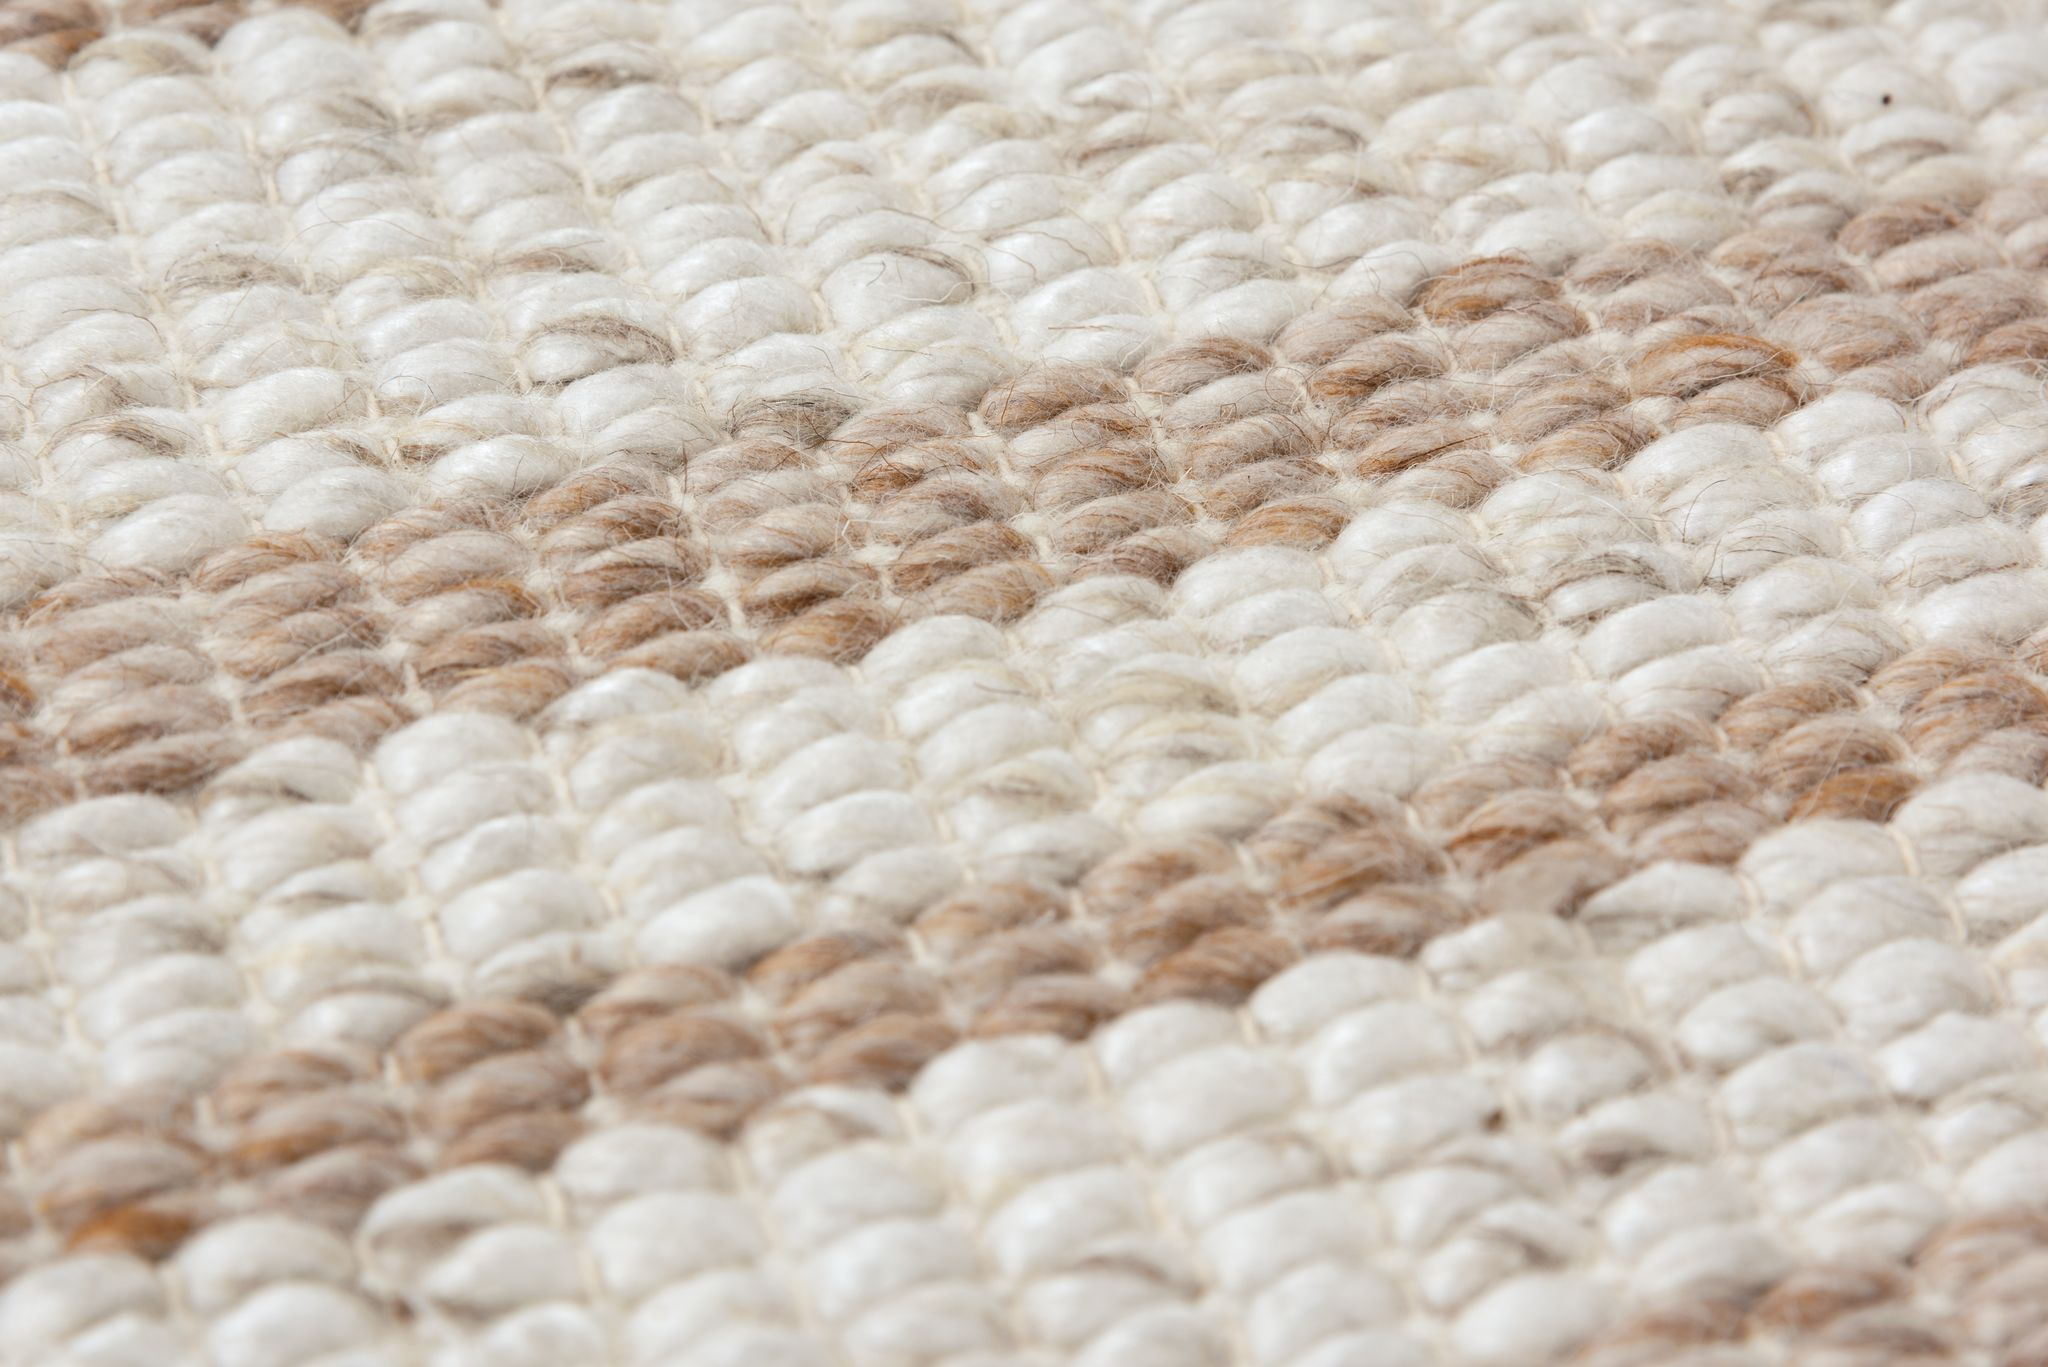 Capri Rizzy Home CPI106 taupe natural beige neutral light brown stripe area rug woven with fringe edge wool braided full